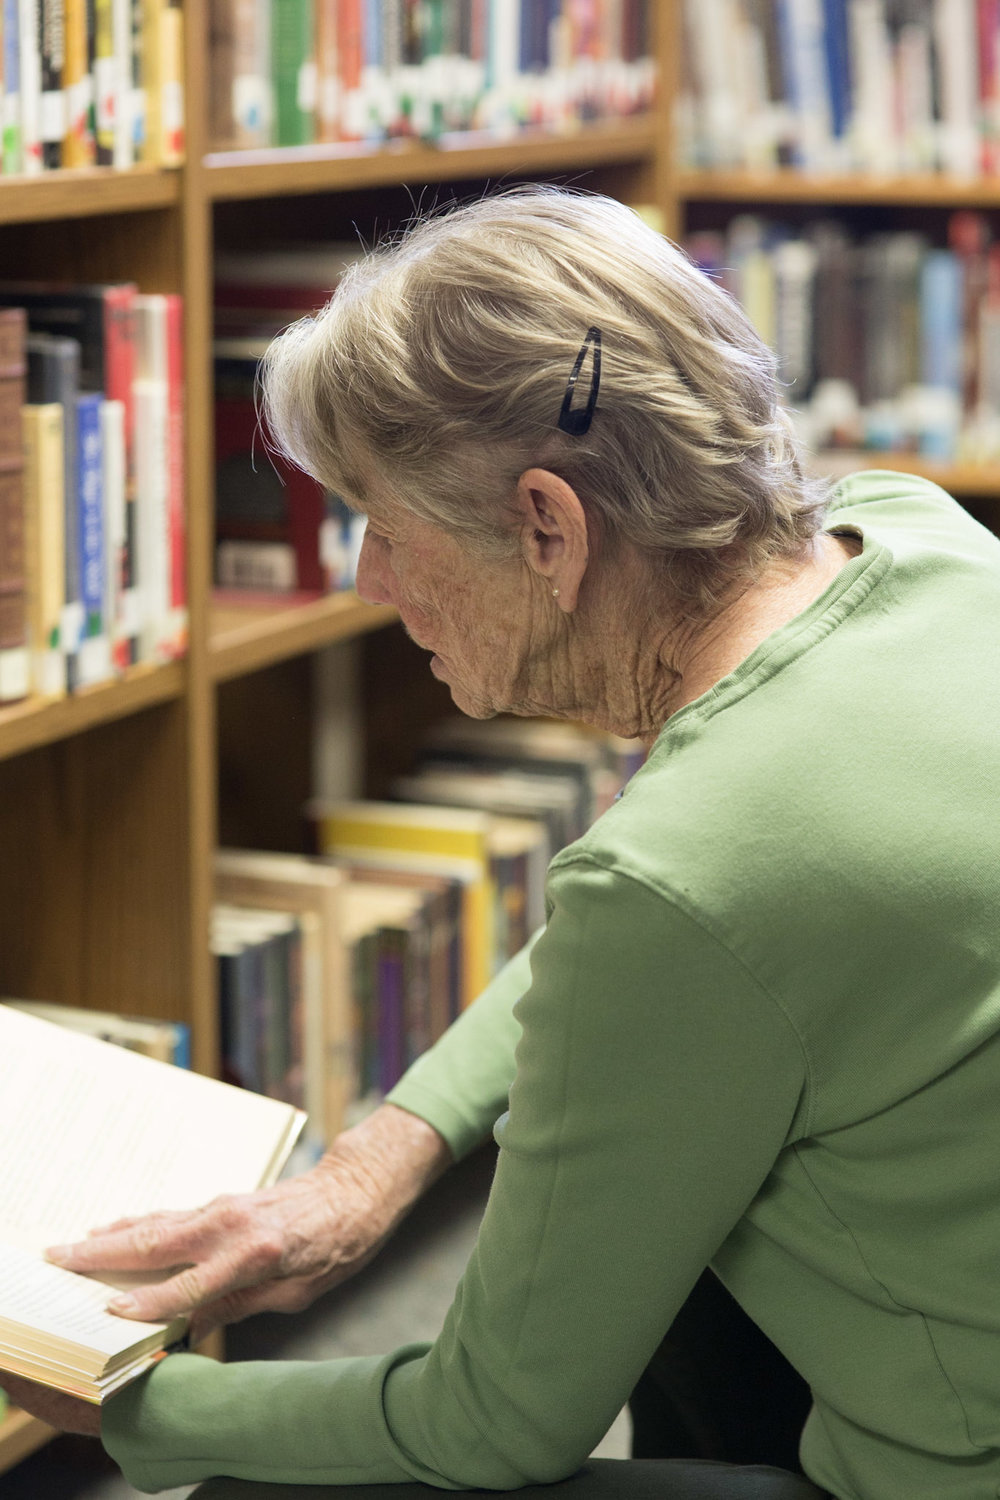 The sweet librarian at Terlingua Library